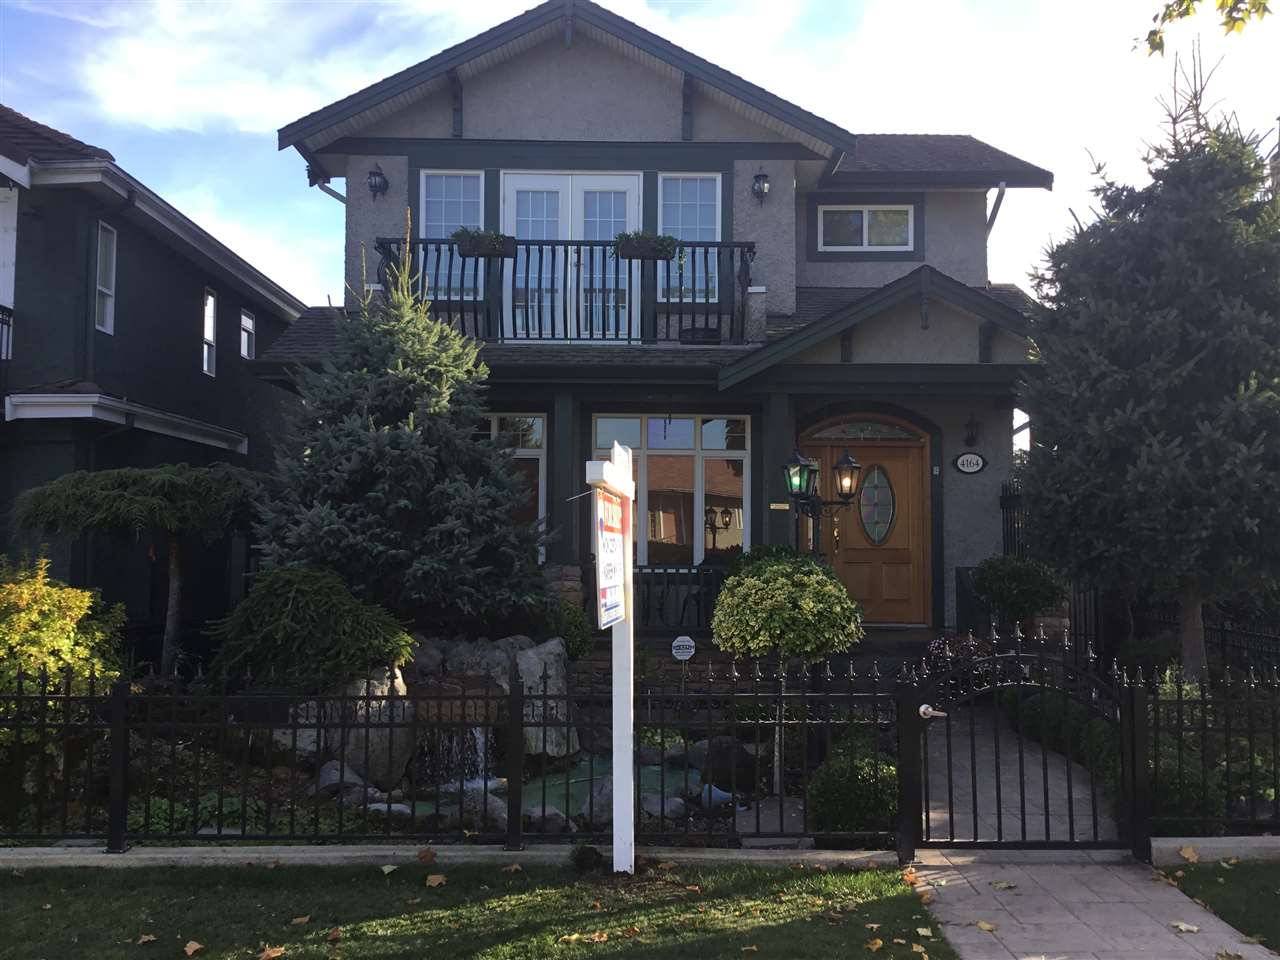 VANCOUVER HEIGHTS-FIRST TIME OFFERED FOR SALE - CUSTOM built Italian inspired 2 storey plus basement featuring 3 bdrms (one on the main), formal liv and din rm with f/p, open kitchen with island S/S appls and fam rm with f/p.Rec rm and wine rm down with private outside entrance.High end finishing throughout with granite counters and island, ceramic tile floors, high ceilings lots of cherry wood cabinets and so much more.Double garage, patios and amazing gardens, decorative pond, front and back fenced with iron picket fence and gates.Great location-walk to shopping, schools and transit.Quiet street with lots of parking.Call today for a private showing.Quick possession.